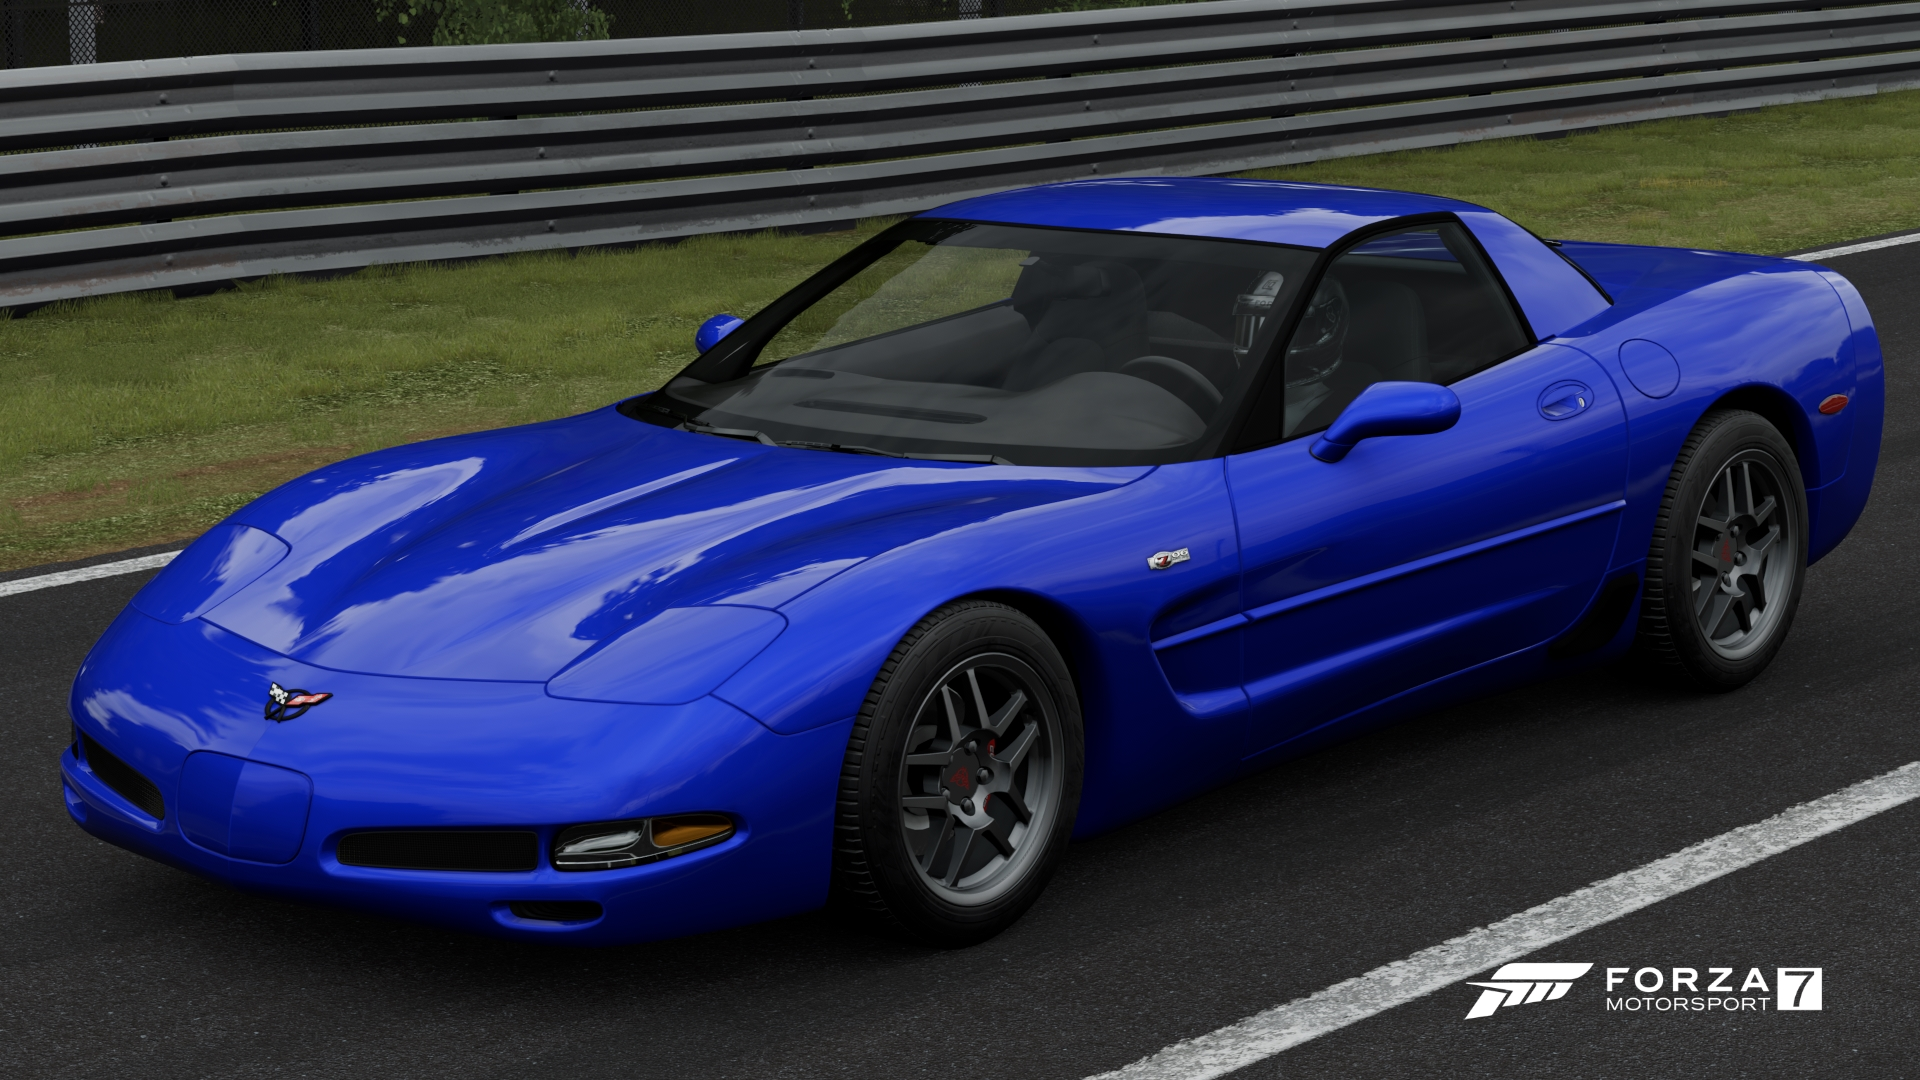 chevrolet corvette z06 2002 forza motorsport wiki. Black Bedroom Furniture Sets. Home Design Ideas